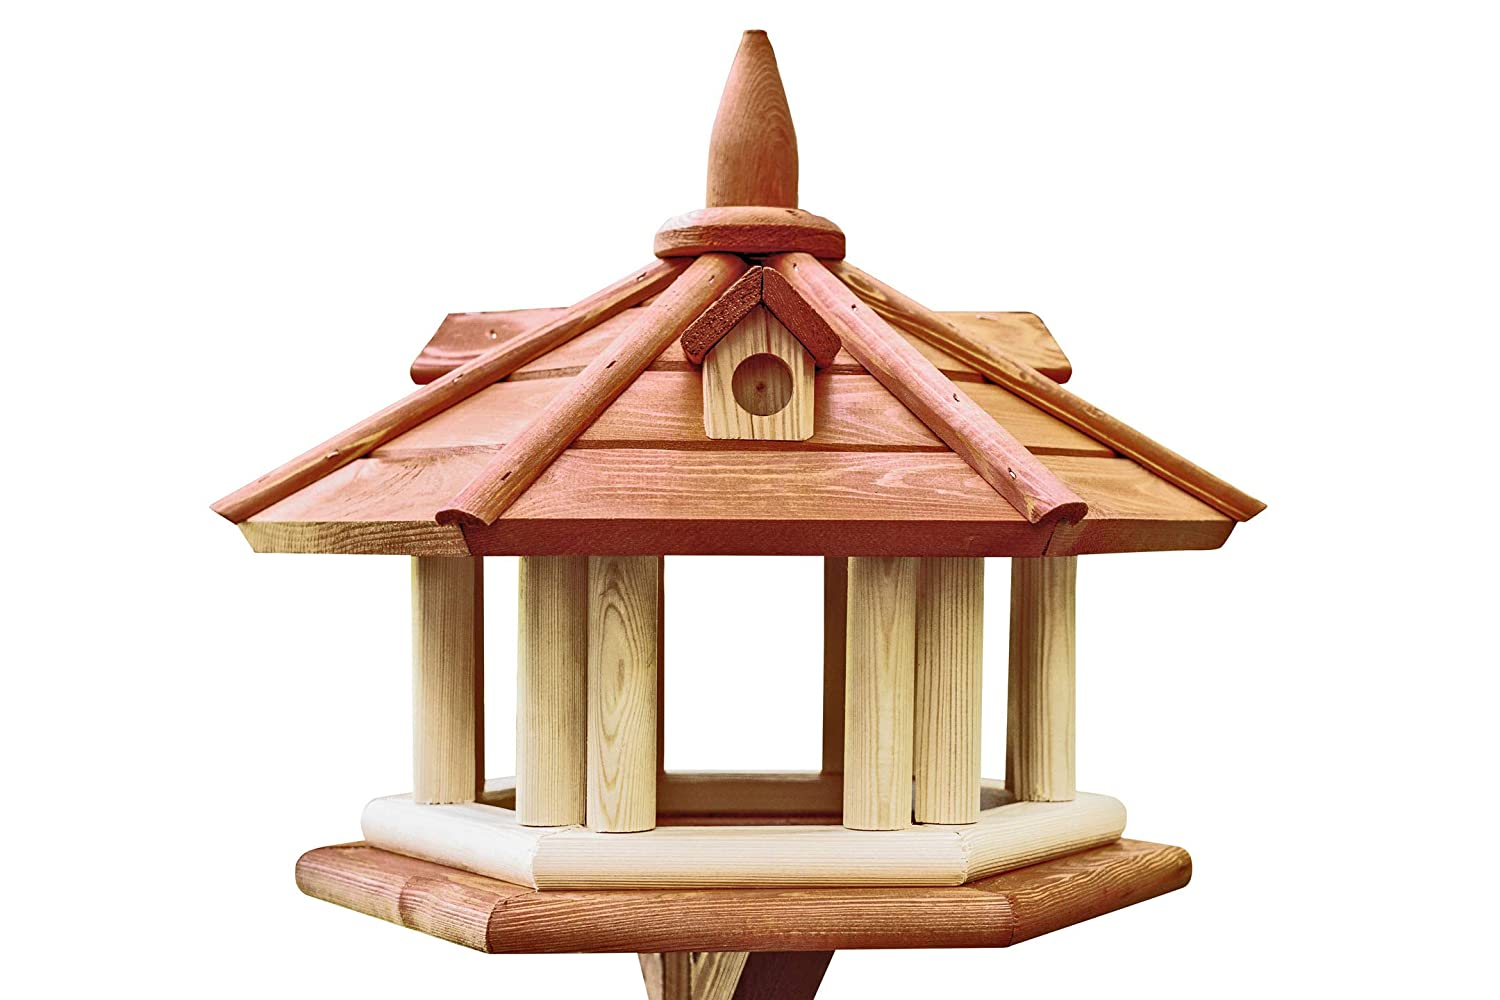 Krakwood Exclusive Wooden Bird Table House, Feeder Without a Stand